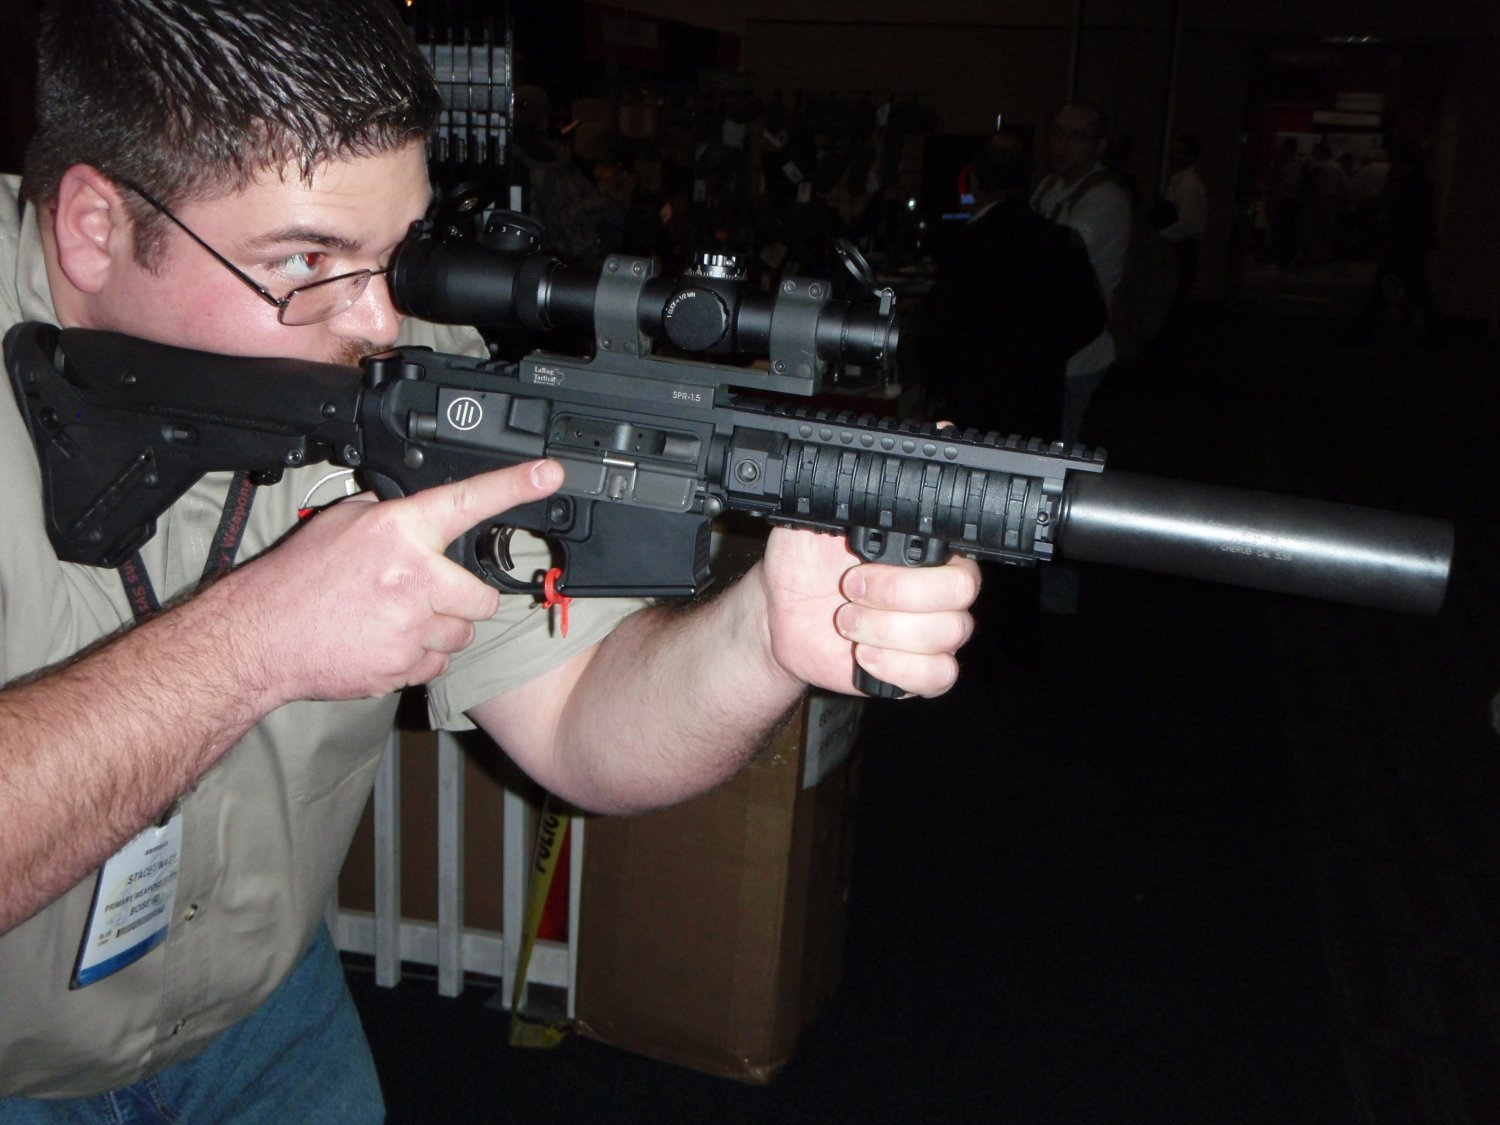 PWS Gas Piston SBR Suppressed SHOT Show 2009 2 <!  :en  >PWS Diablo Long Stroke Gas Piston/Op Rod Driven 5.56mm AR 15 SBR Upper Receiver<!  :  >